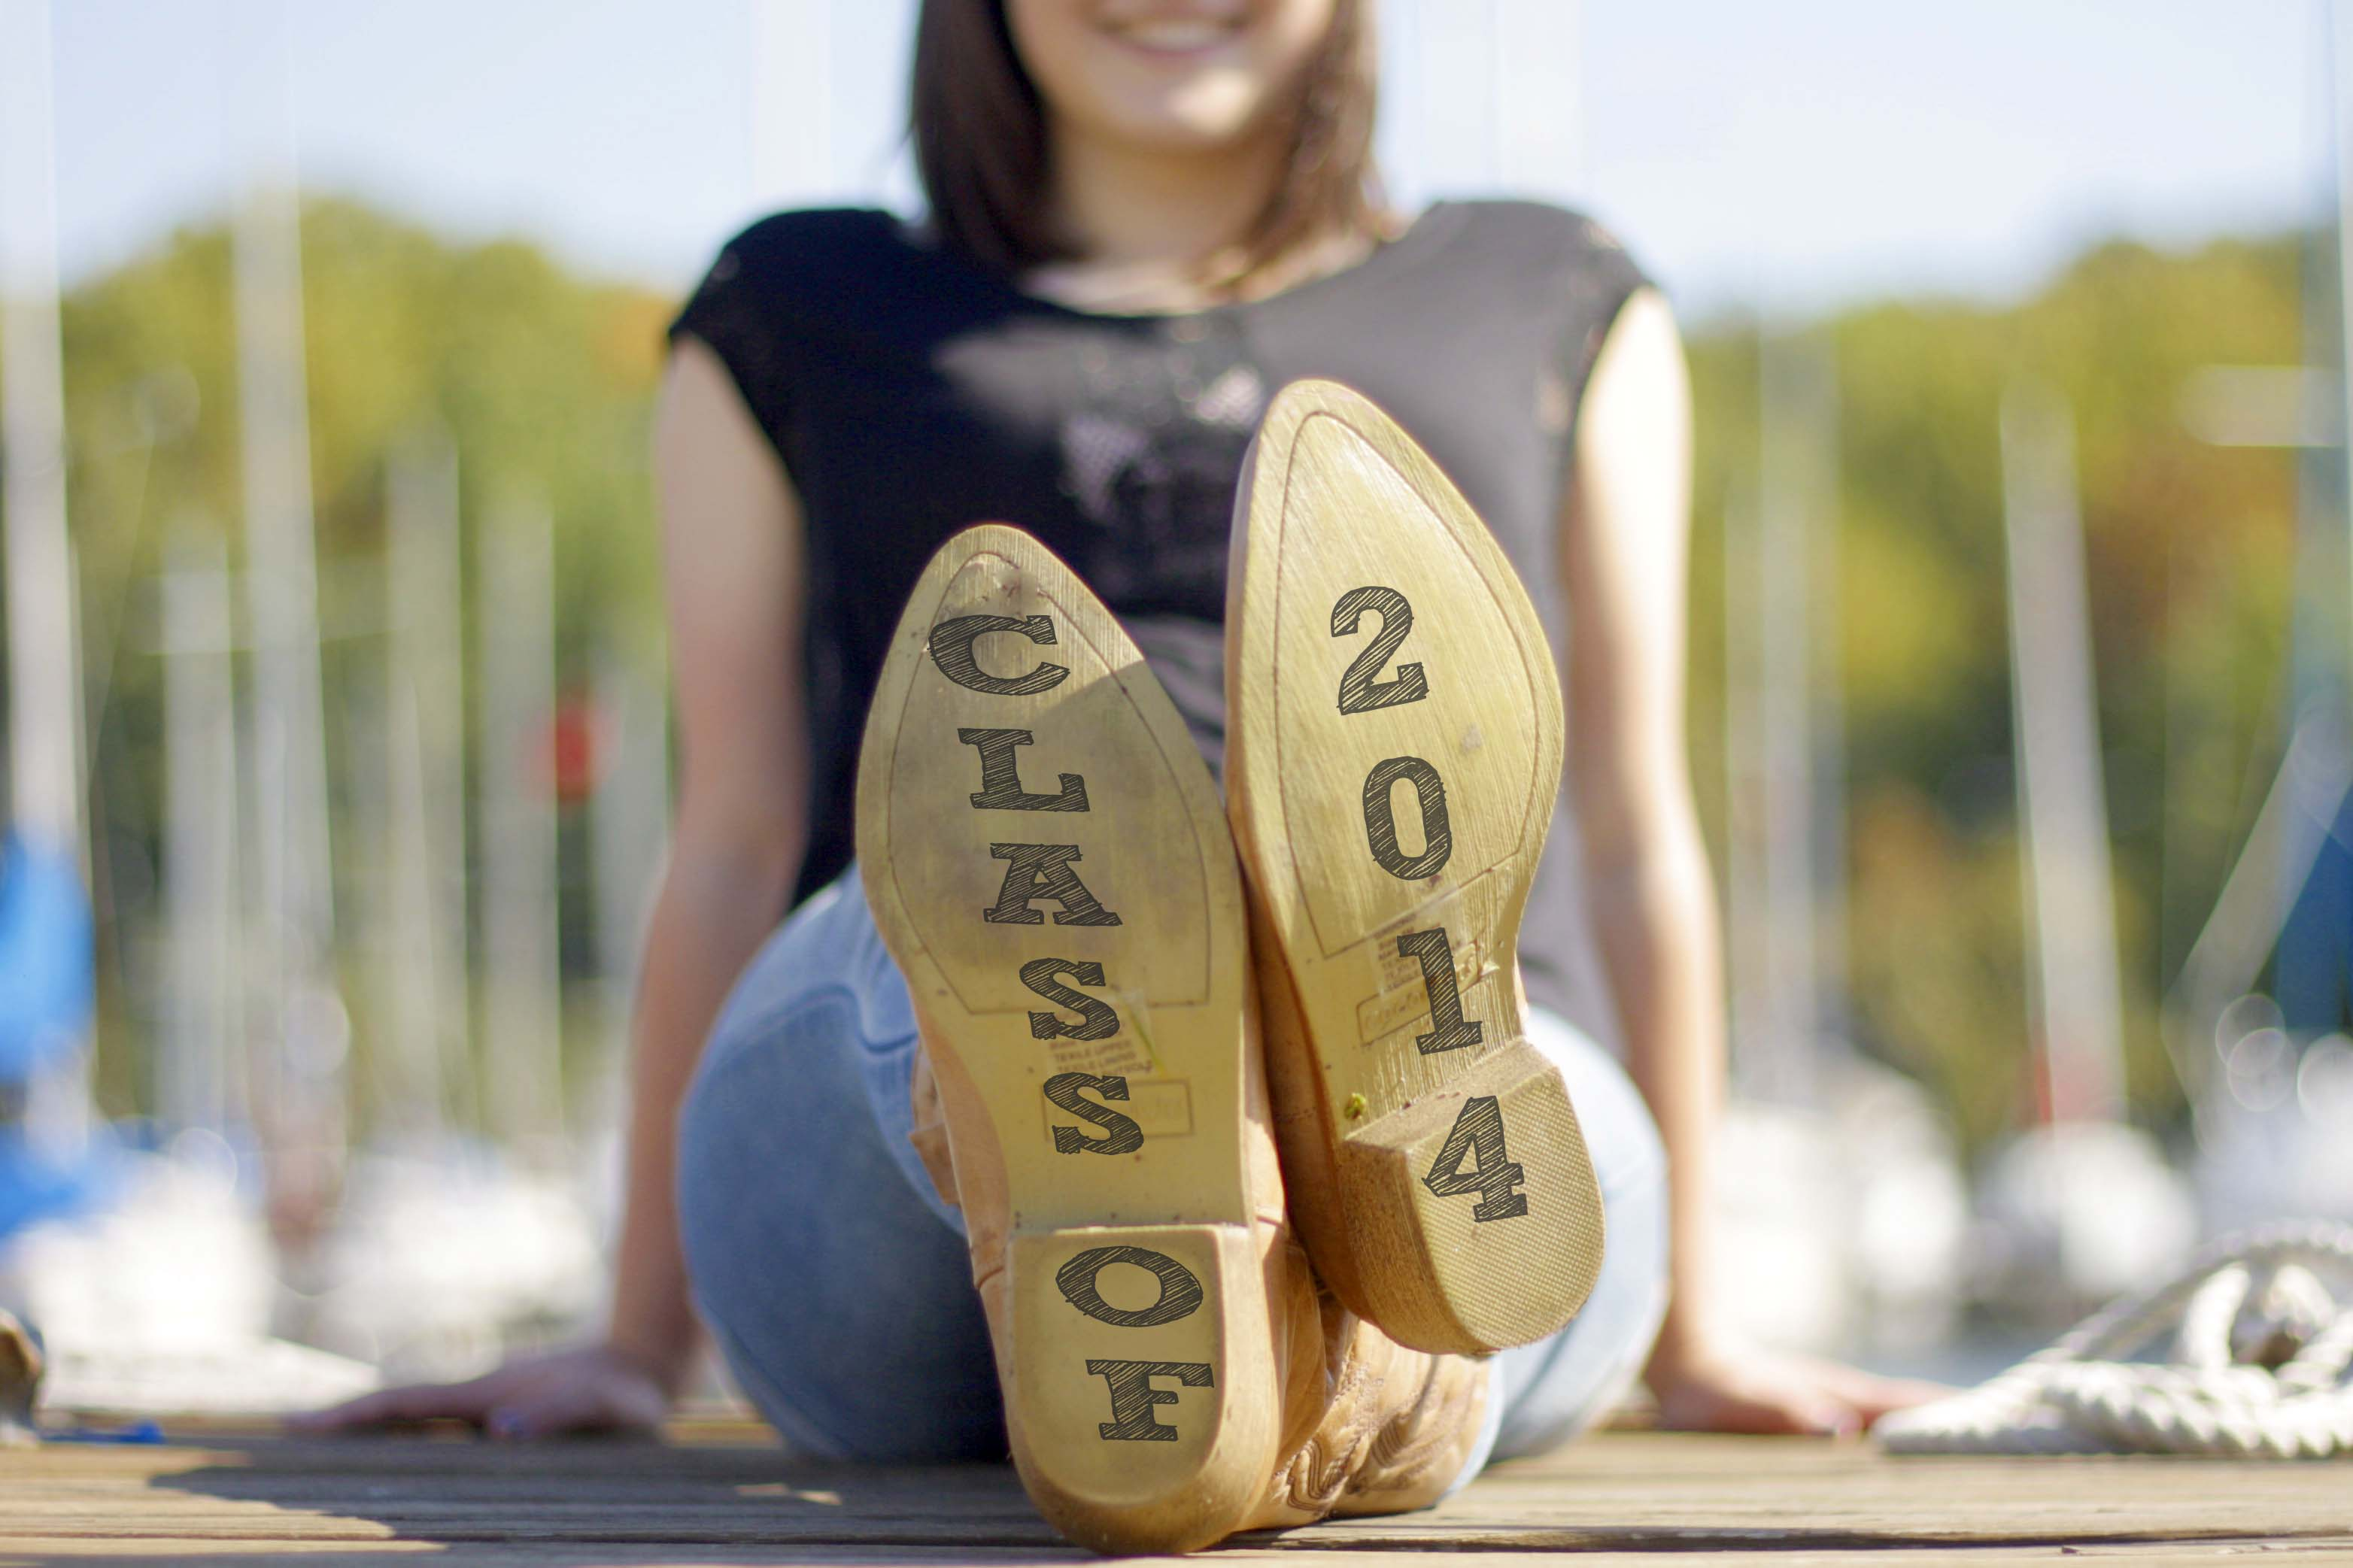 Senior Pictures :: Boats, docks, bridges, and woops.. some babies!